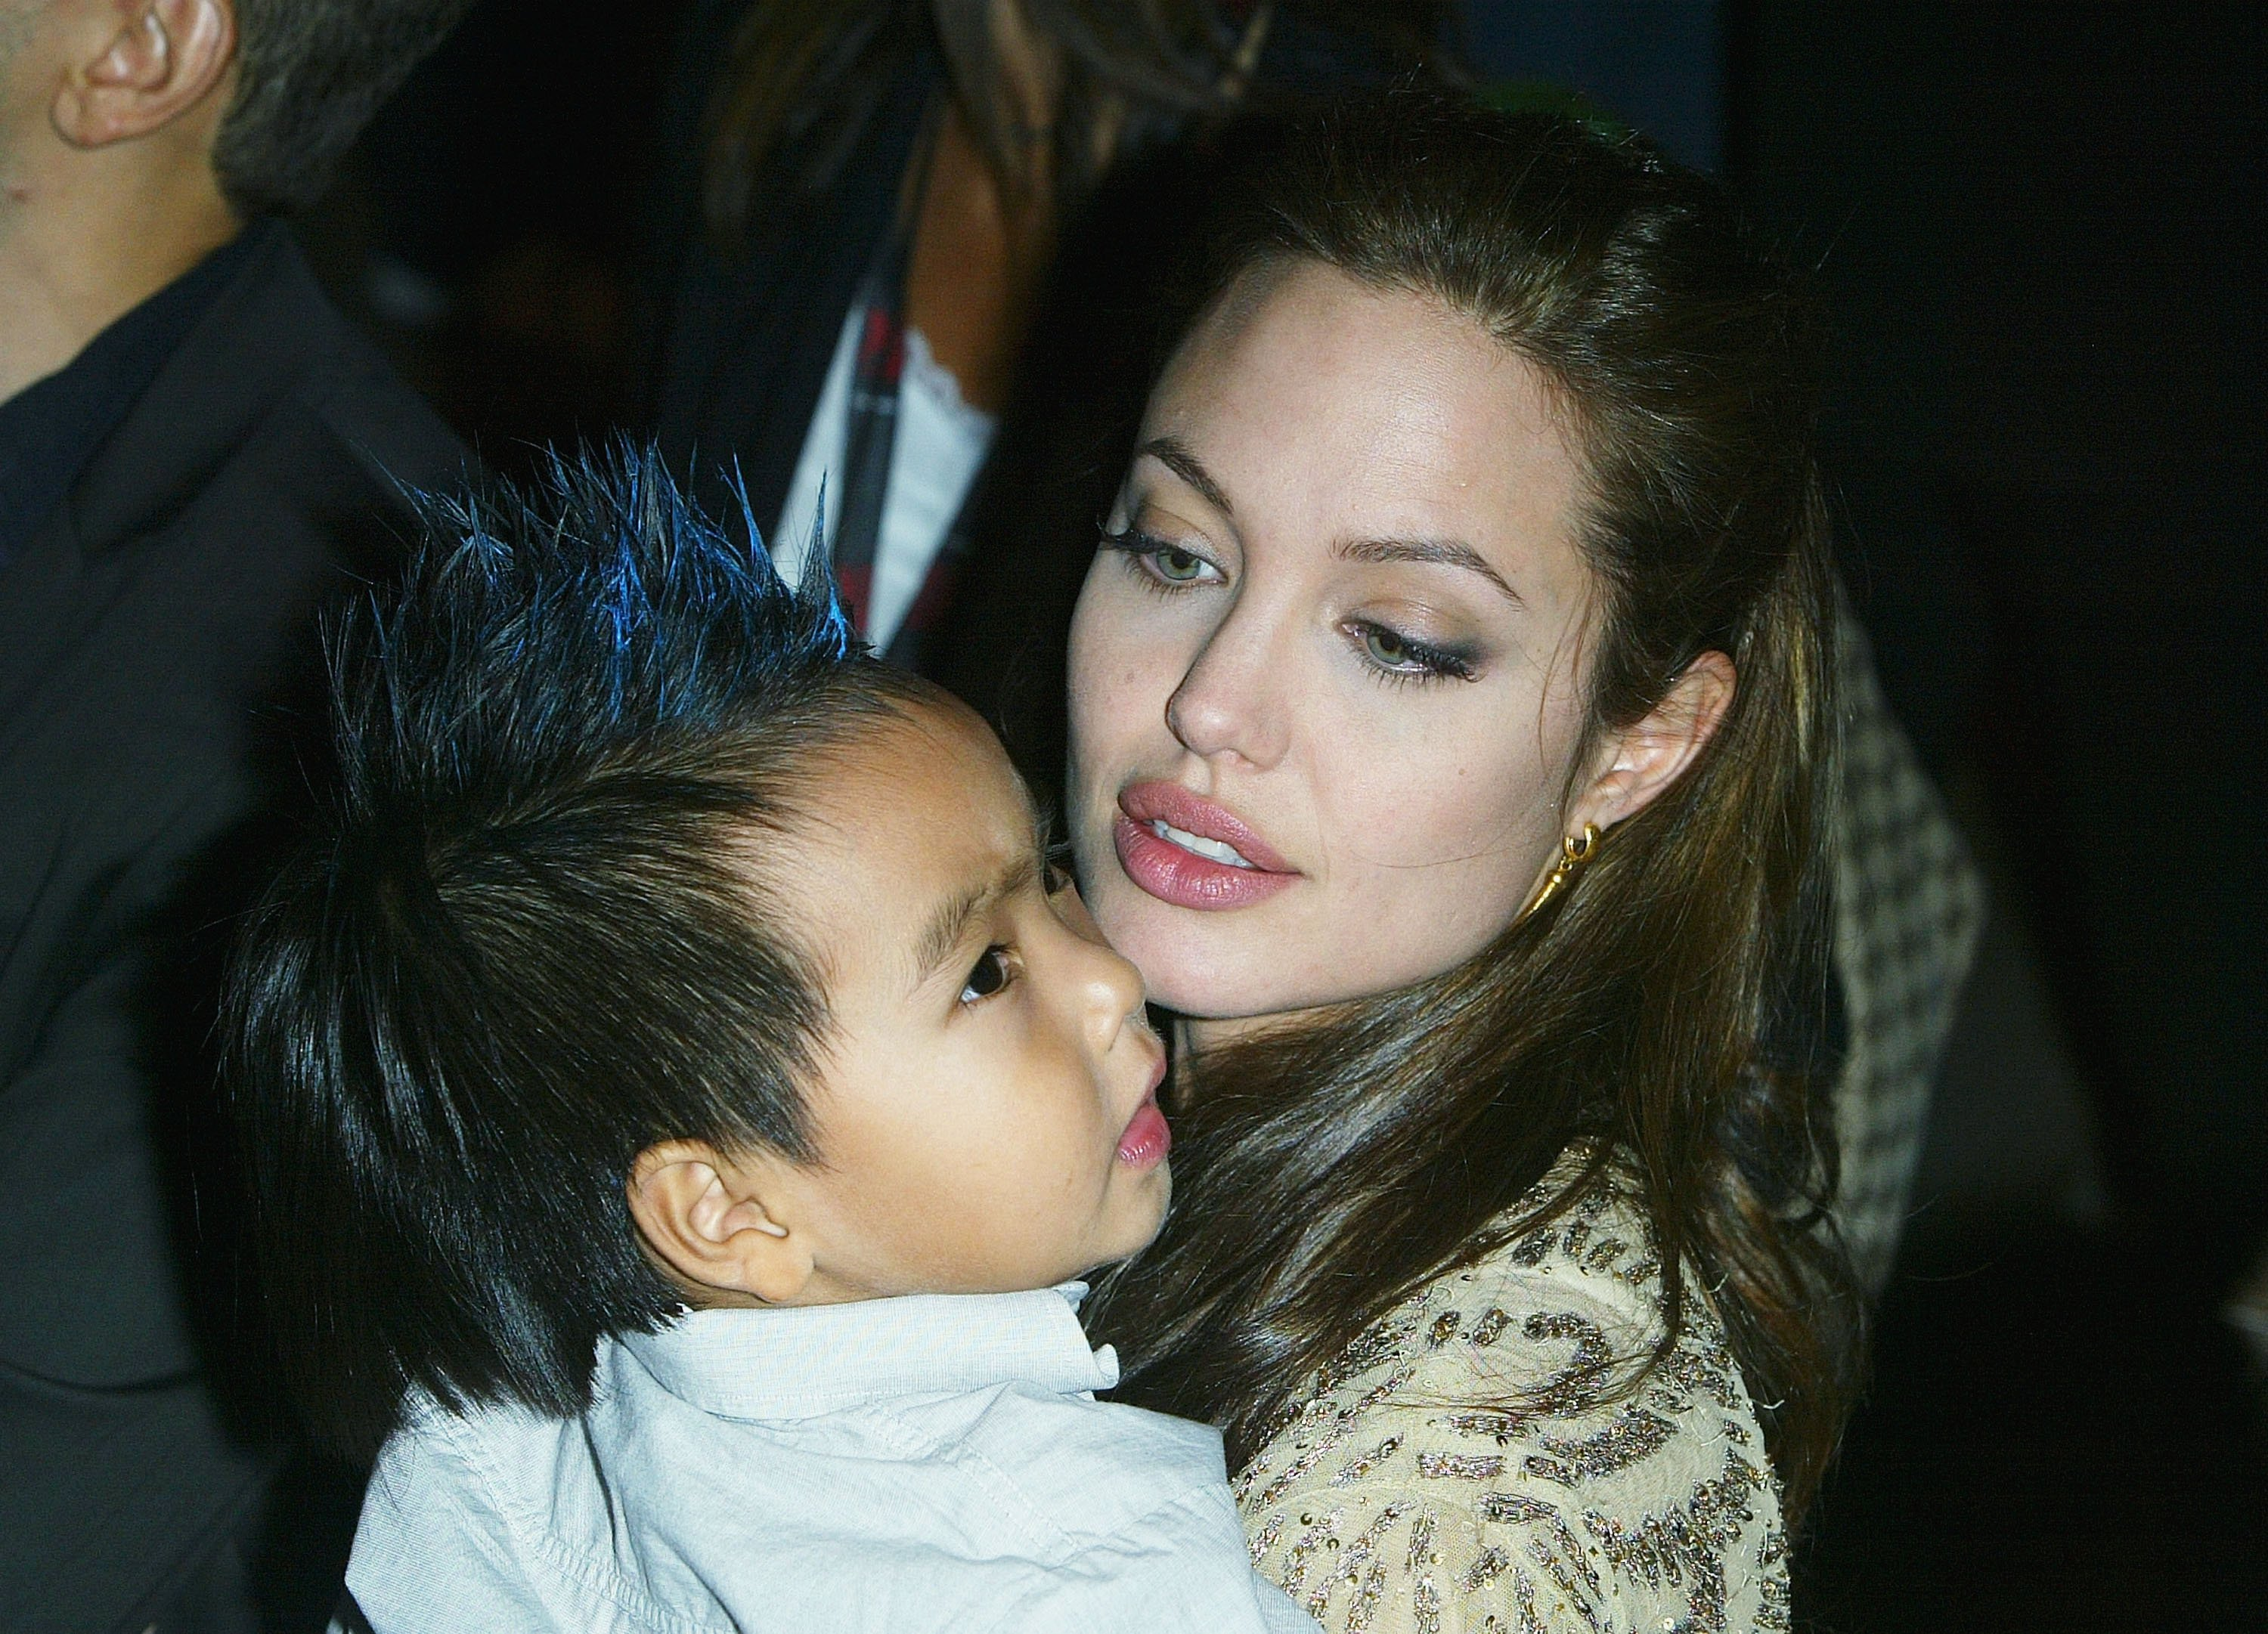 Image Source: Getty Images/Angelina holding her child